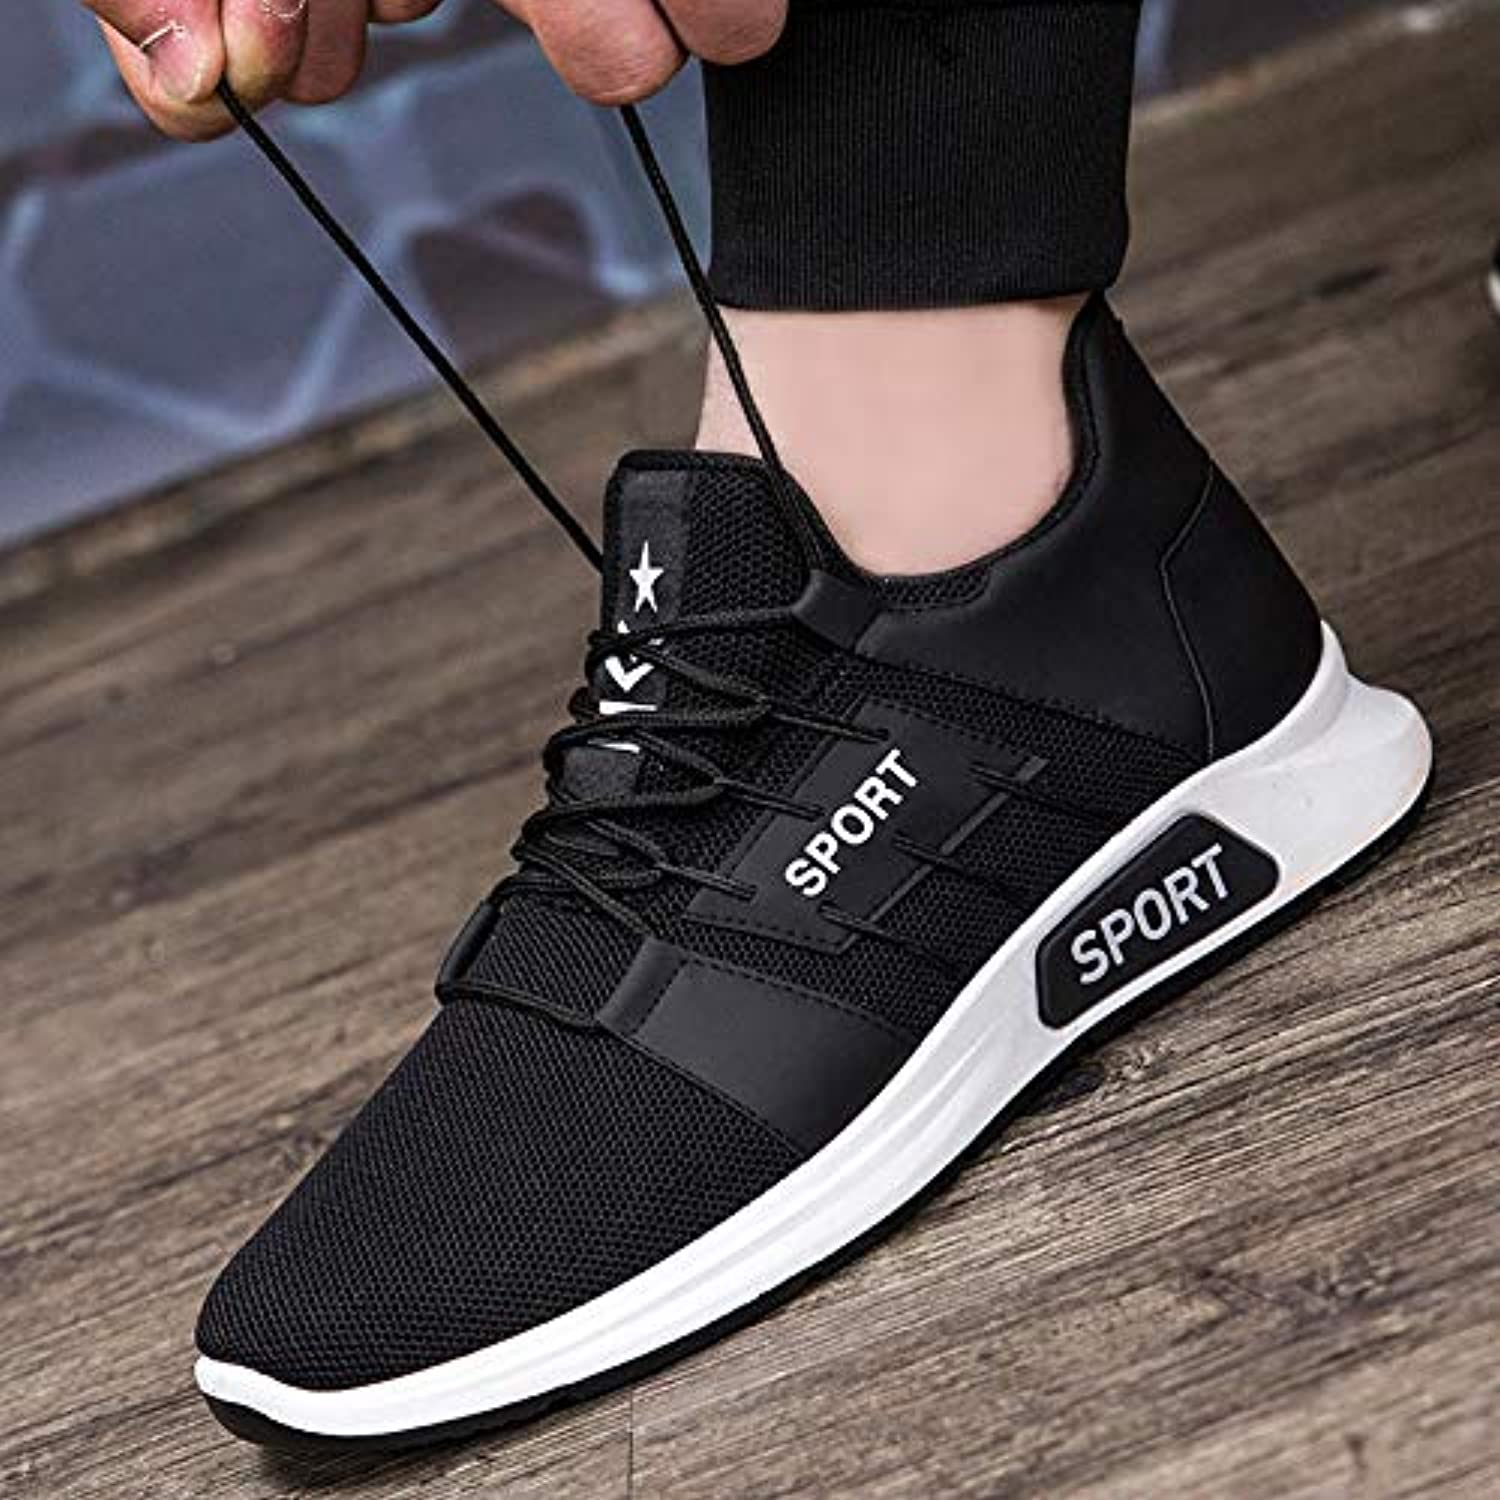 LOVDRAM Men's shoes Spring New Men'S shoes Fashion Wild Casual Men'S shoes Flying Woven Student Sports Running shoes